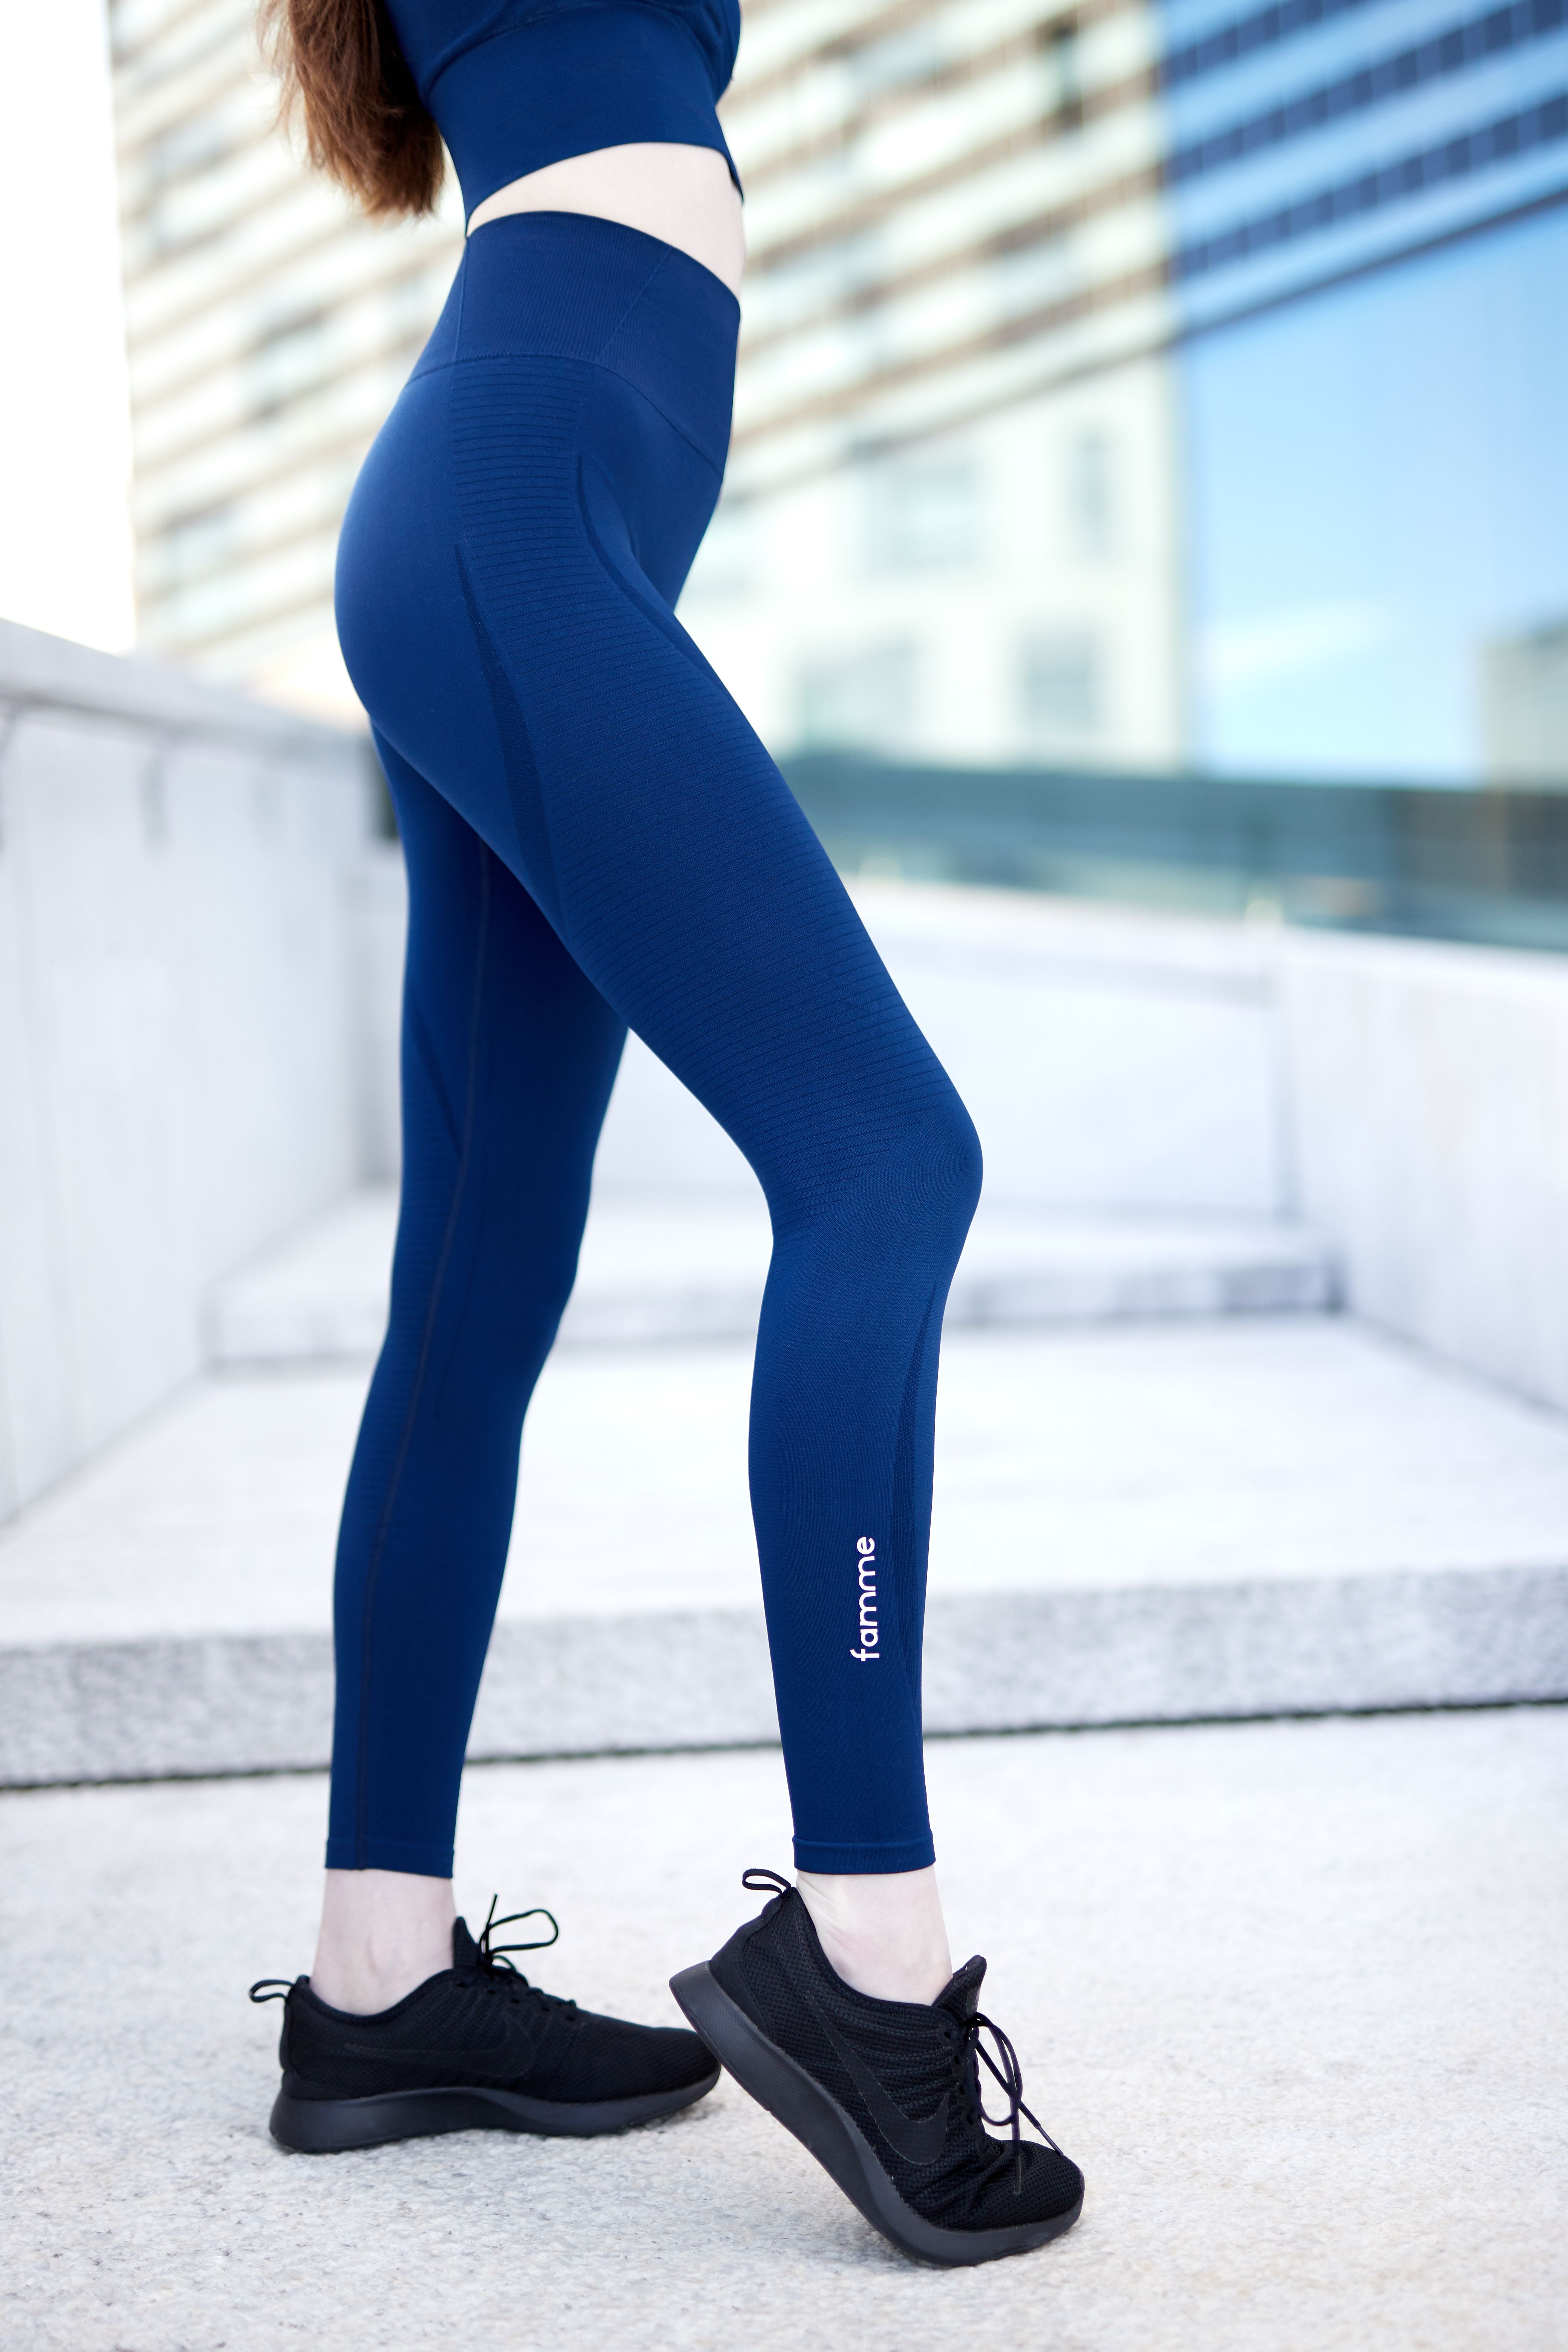 c5277957646d5 Super comfy seamless tights, perfect activewear! The Famme Vortex Leggings  fits as good as